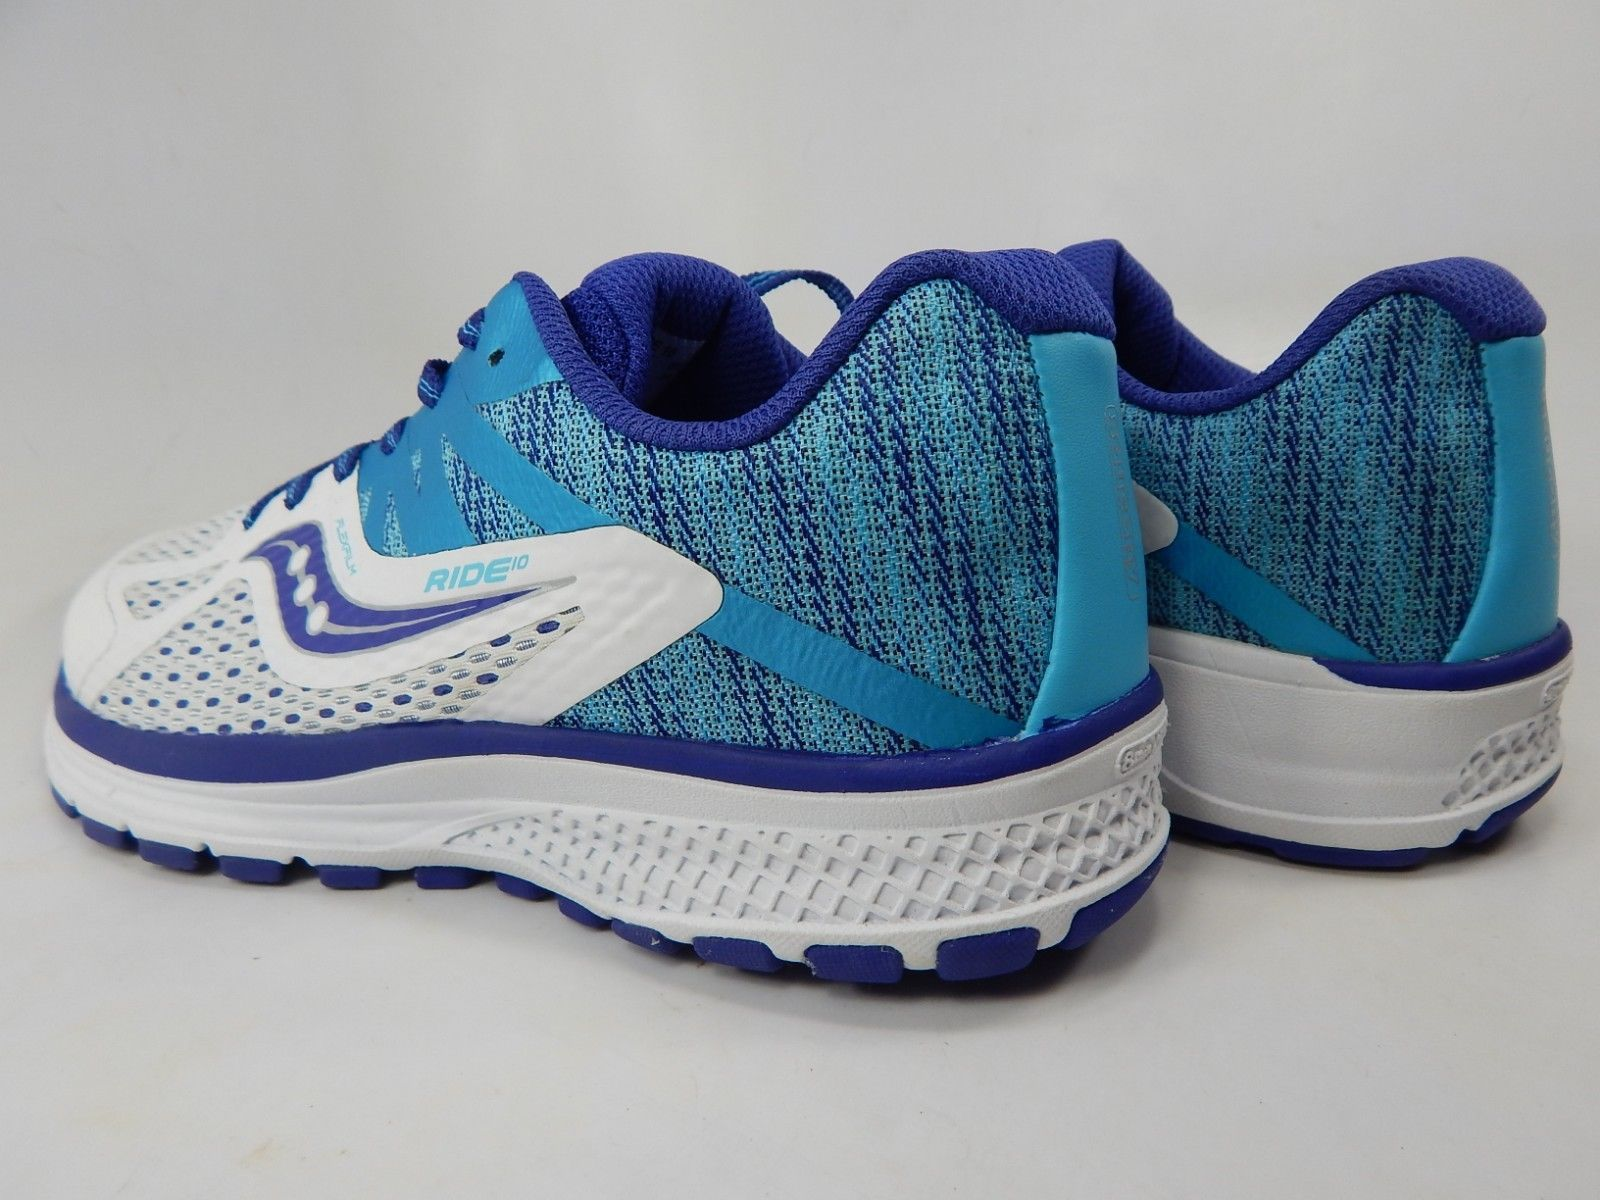 Saucony Ride 10 Size 4 Y (M)  Boy's Youth Running Shoes Blue White S16000-2